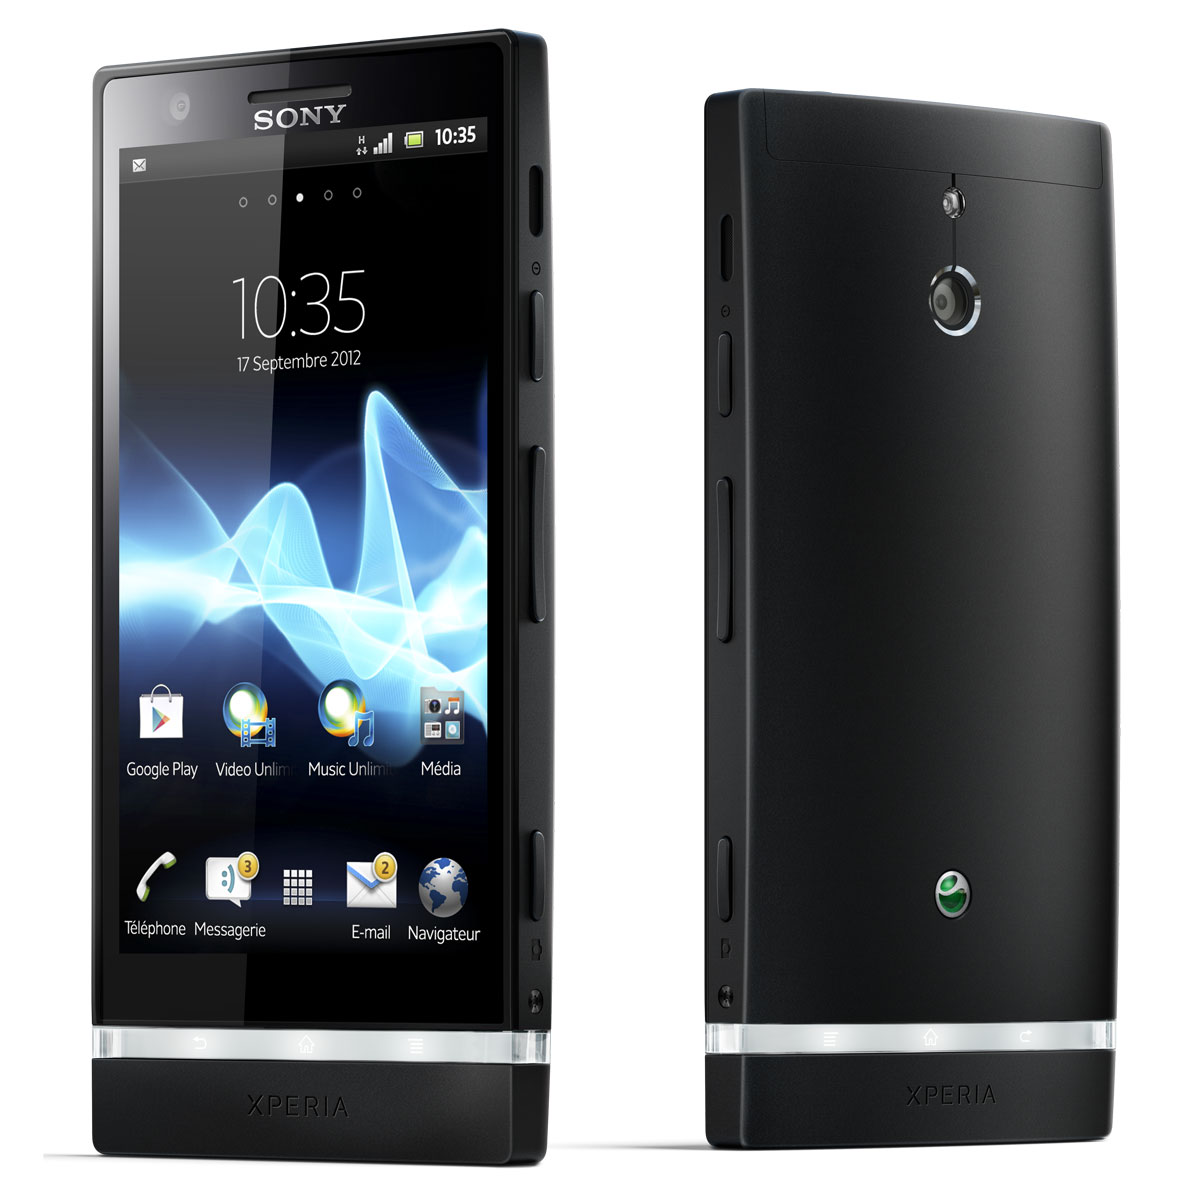 sony xperia p noir mobile smartphone sony sur ldlc. Black Bedroom Furniture Sets. Home Design Ideas